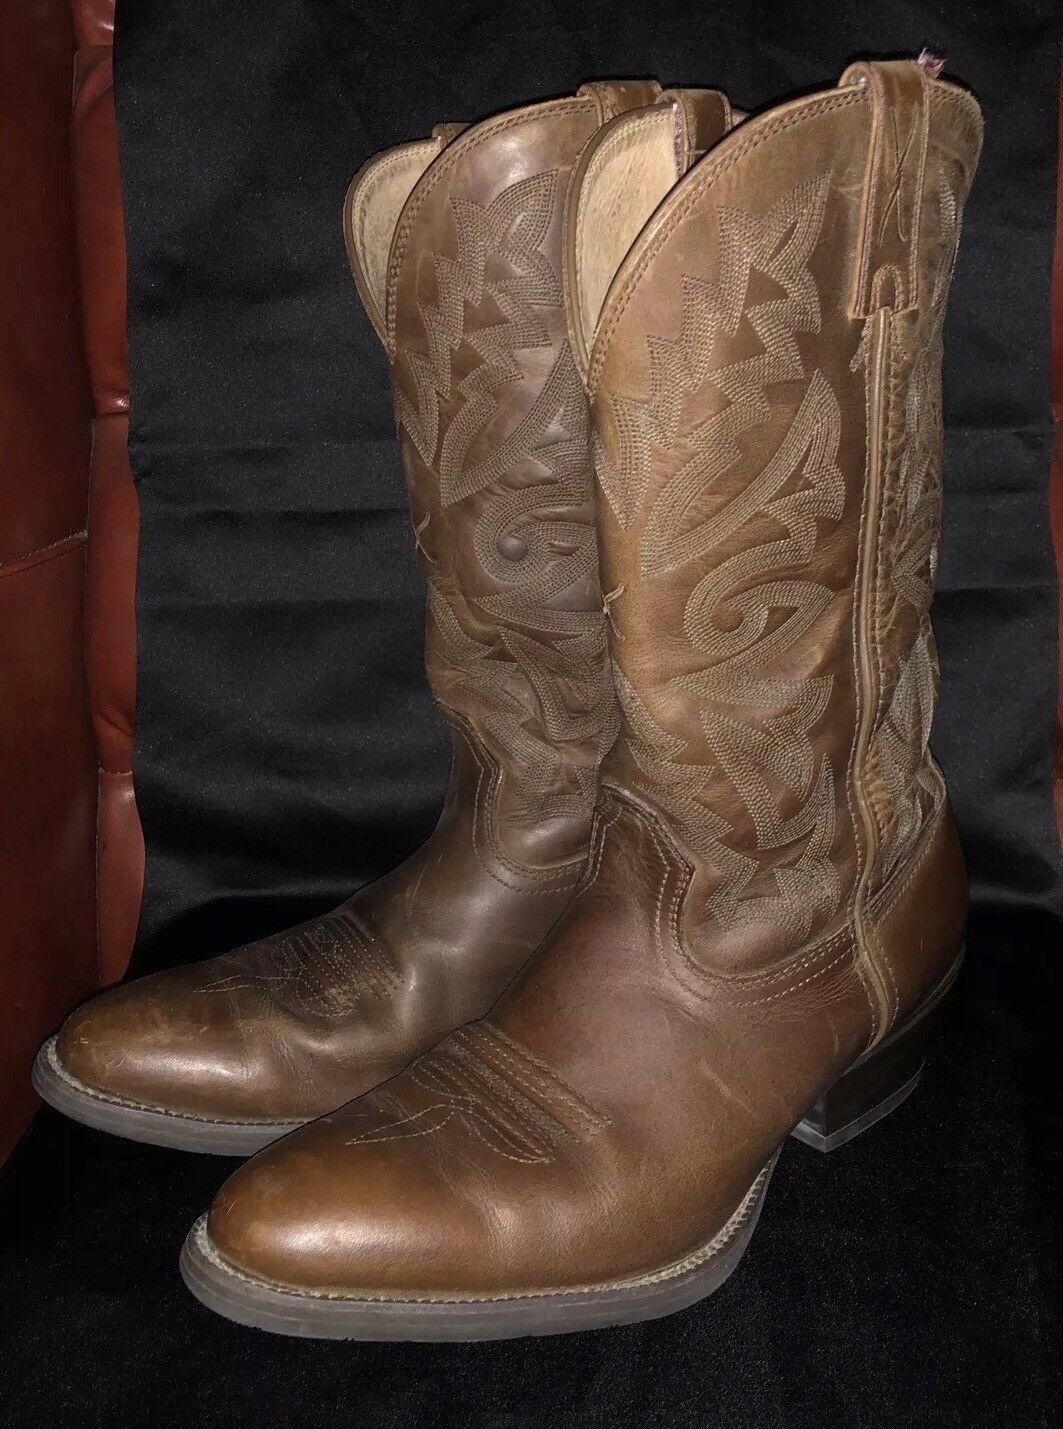 Mens Twisted X Western Distressed Saddle Leather Boots (11D)   MWT0004   EUC